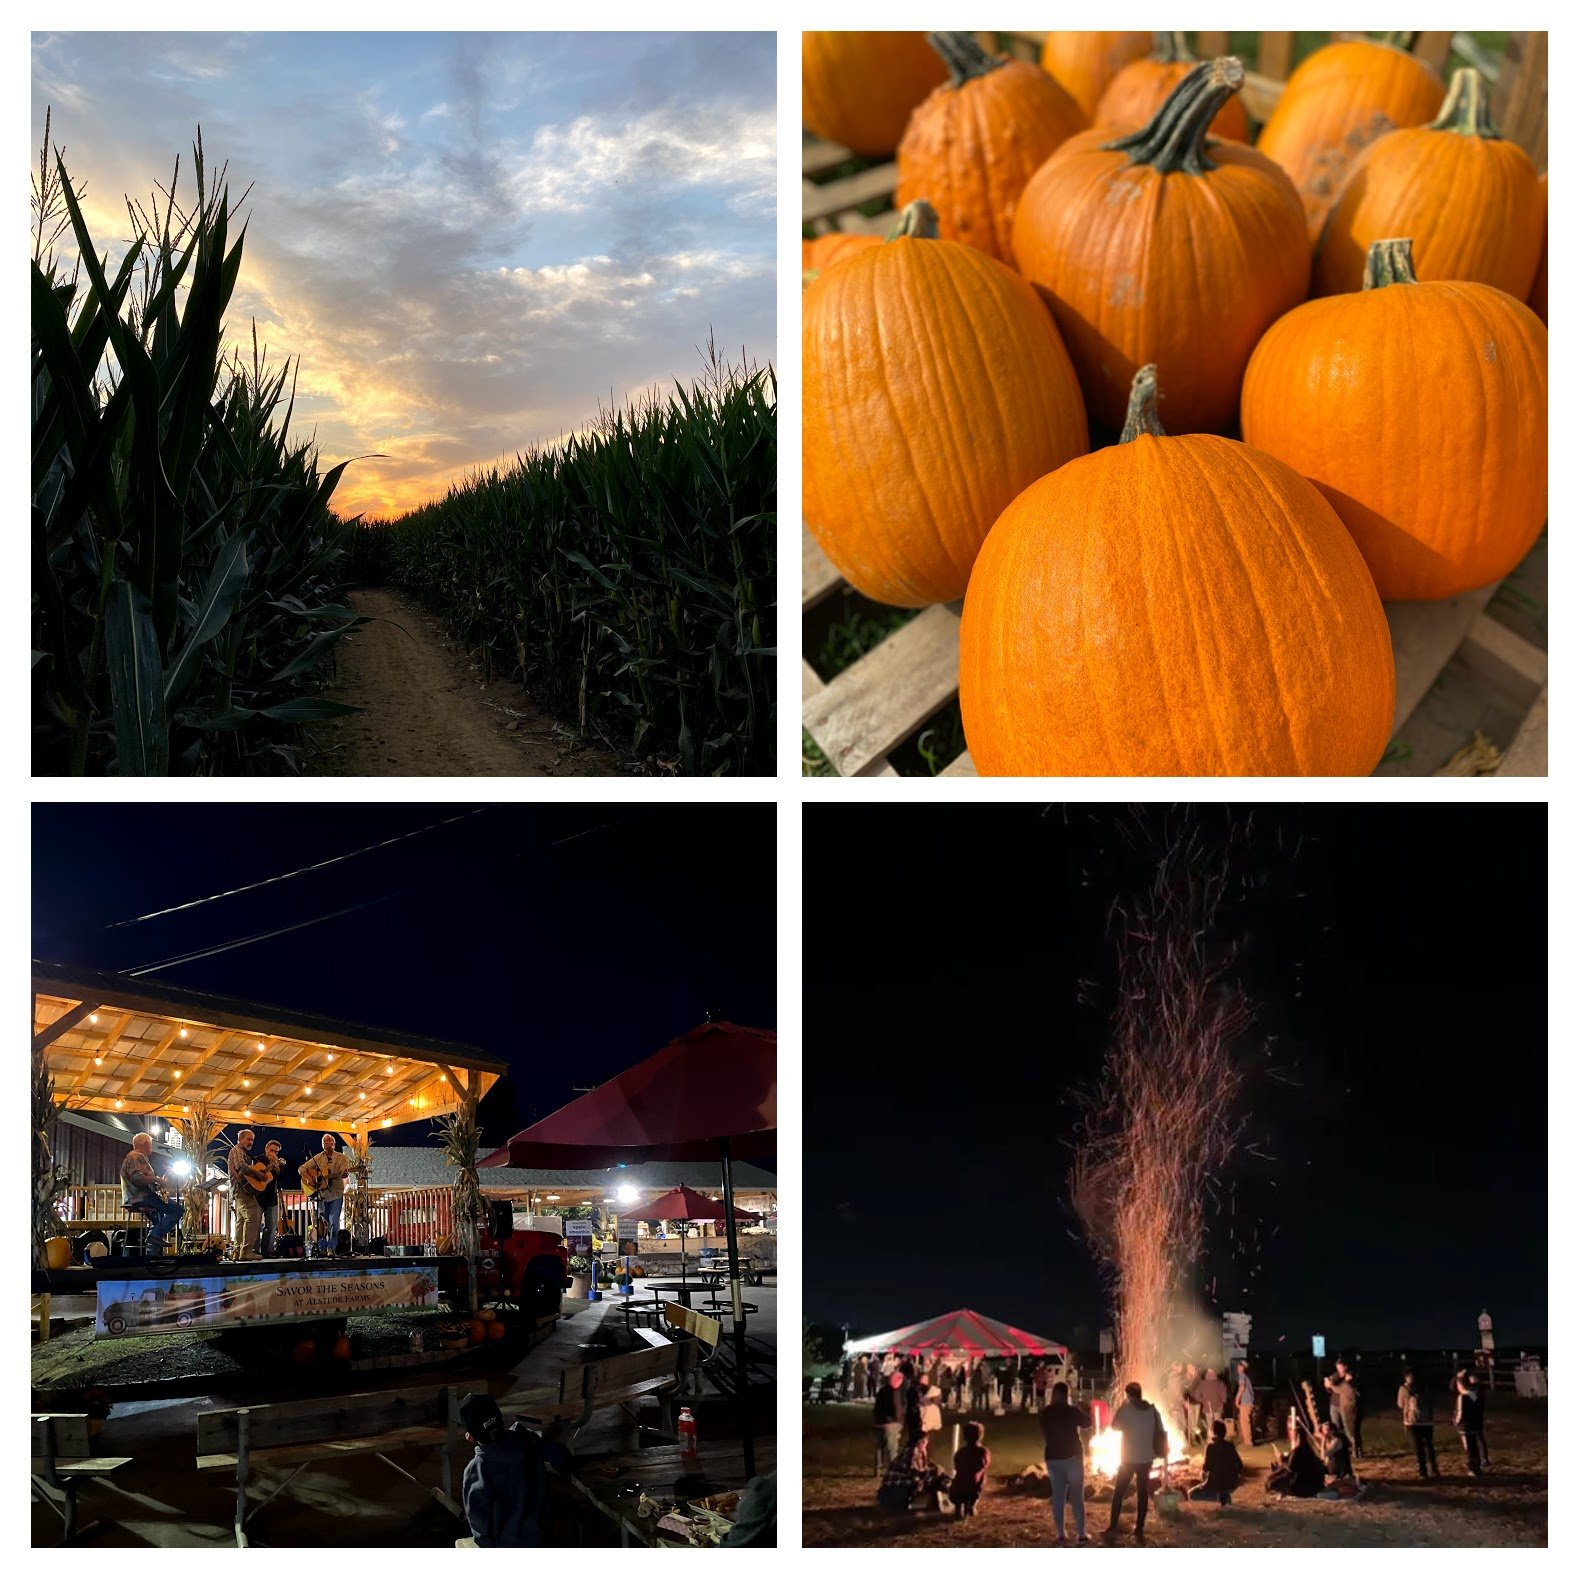 Harvest Moon Nights at Alstede Farms at Alstede Farms